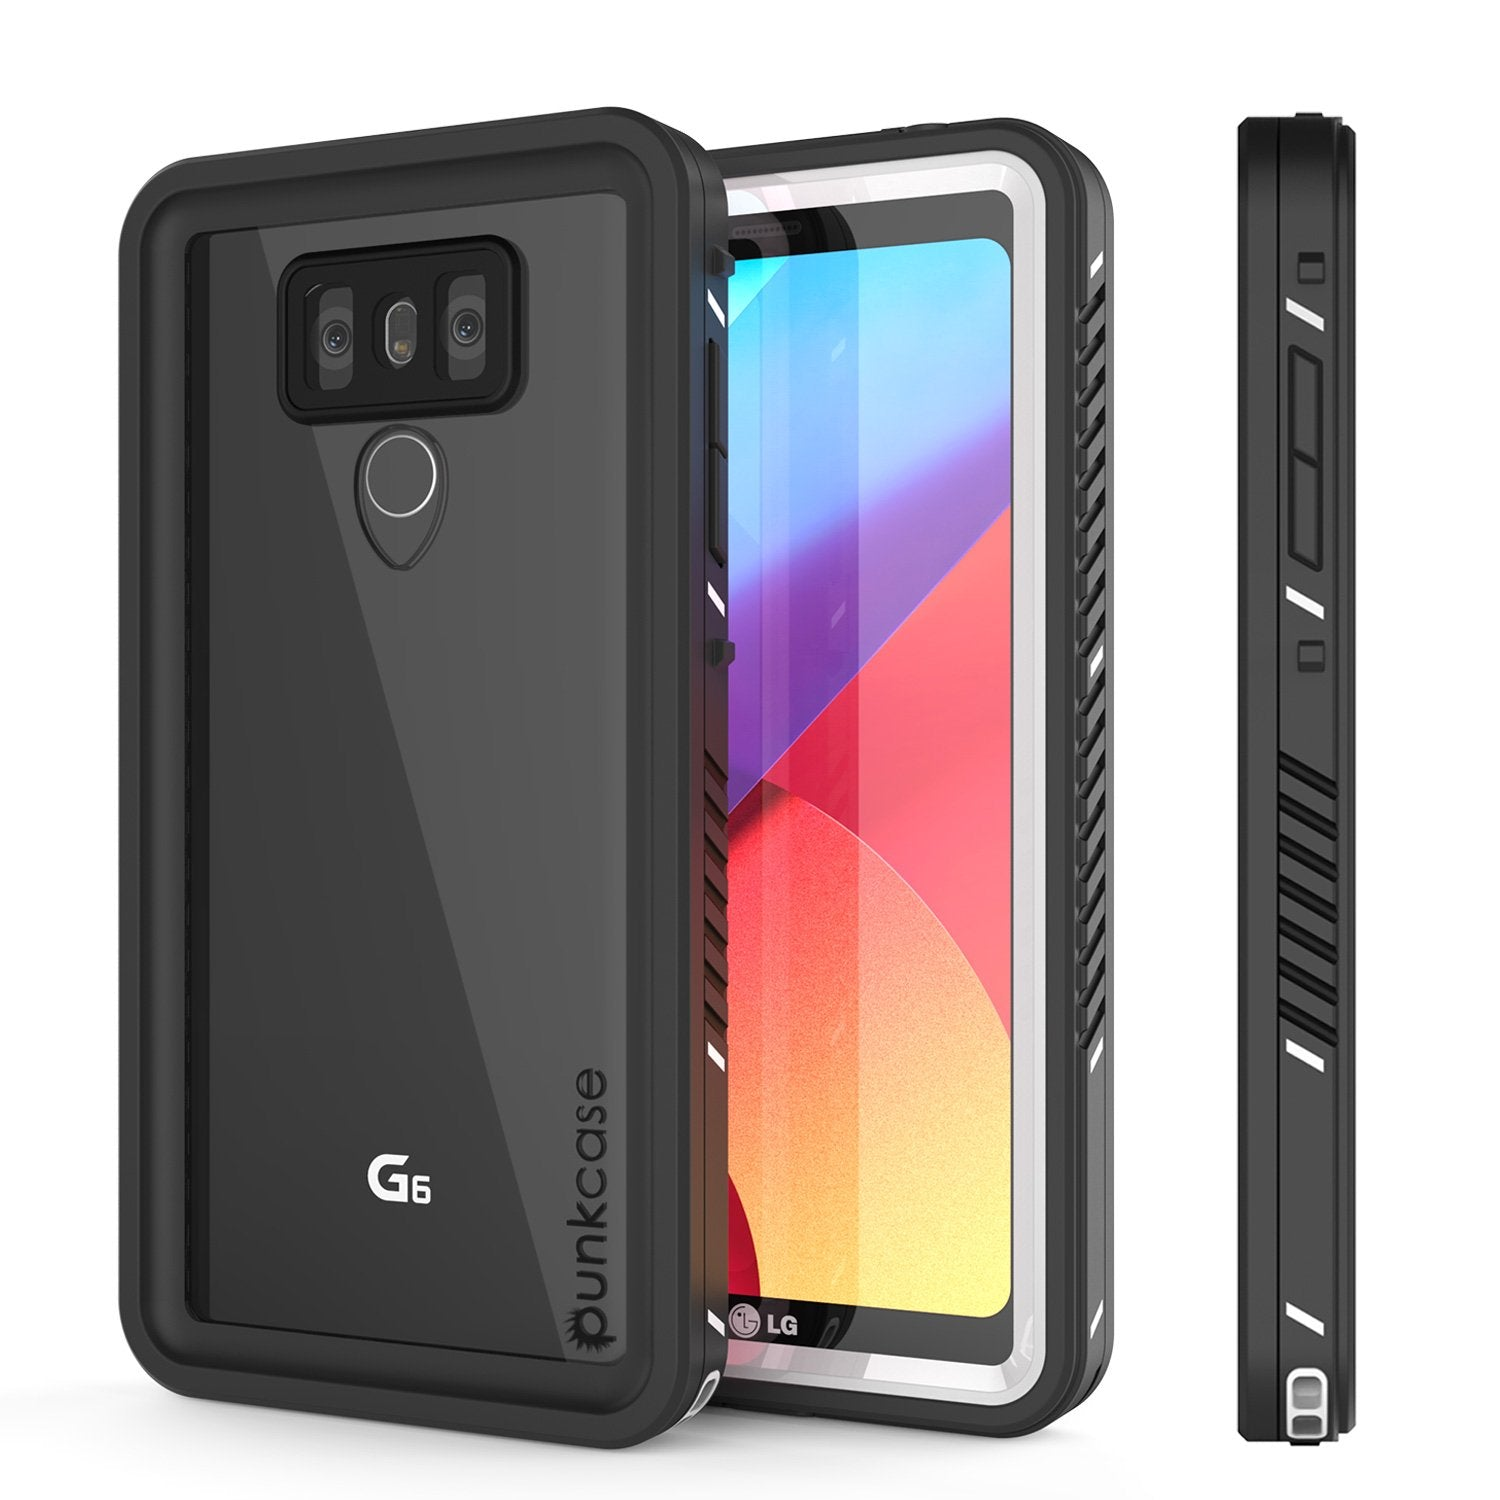 LG G6 Waterproof Case, Punkcase [Extreme Series] [Slim Fit] [IP68 Certified] [Shockproof] [Snowproof] [Dirproof] Armor Cover W/ Built In Screen Protector for LG G6 [WHITE]